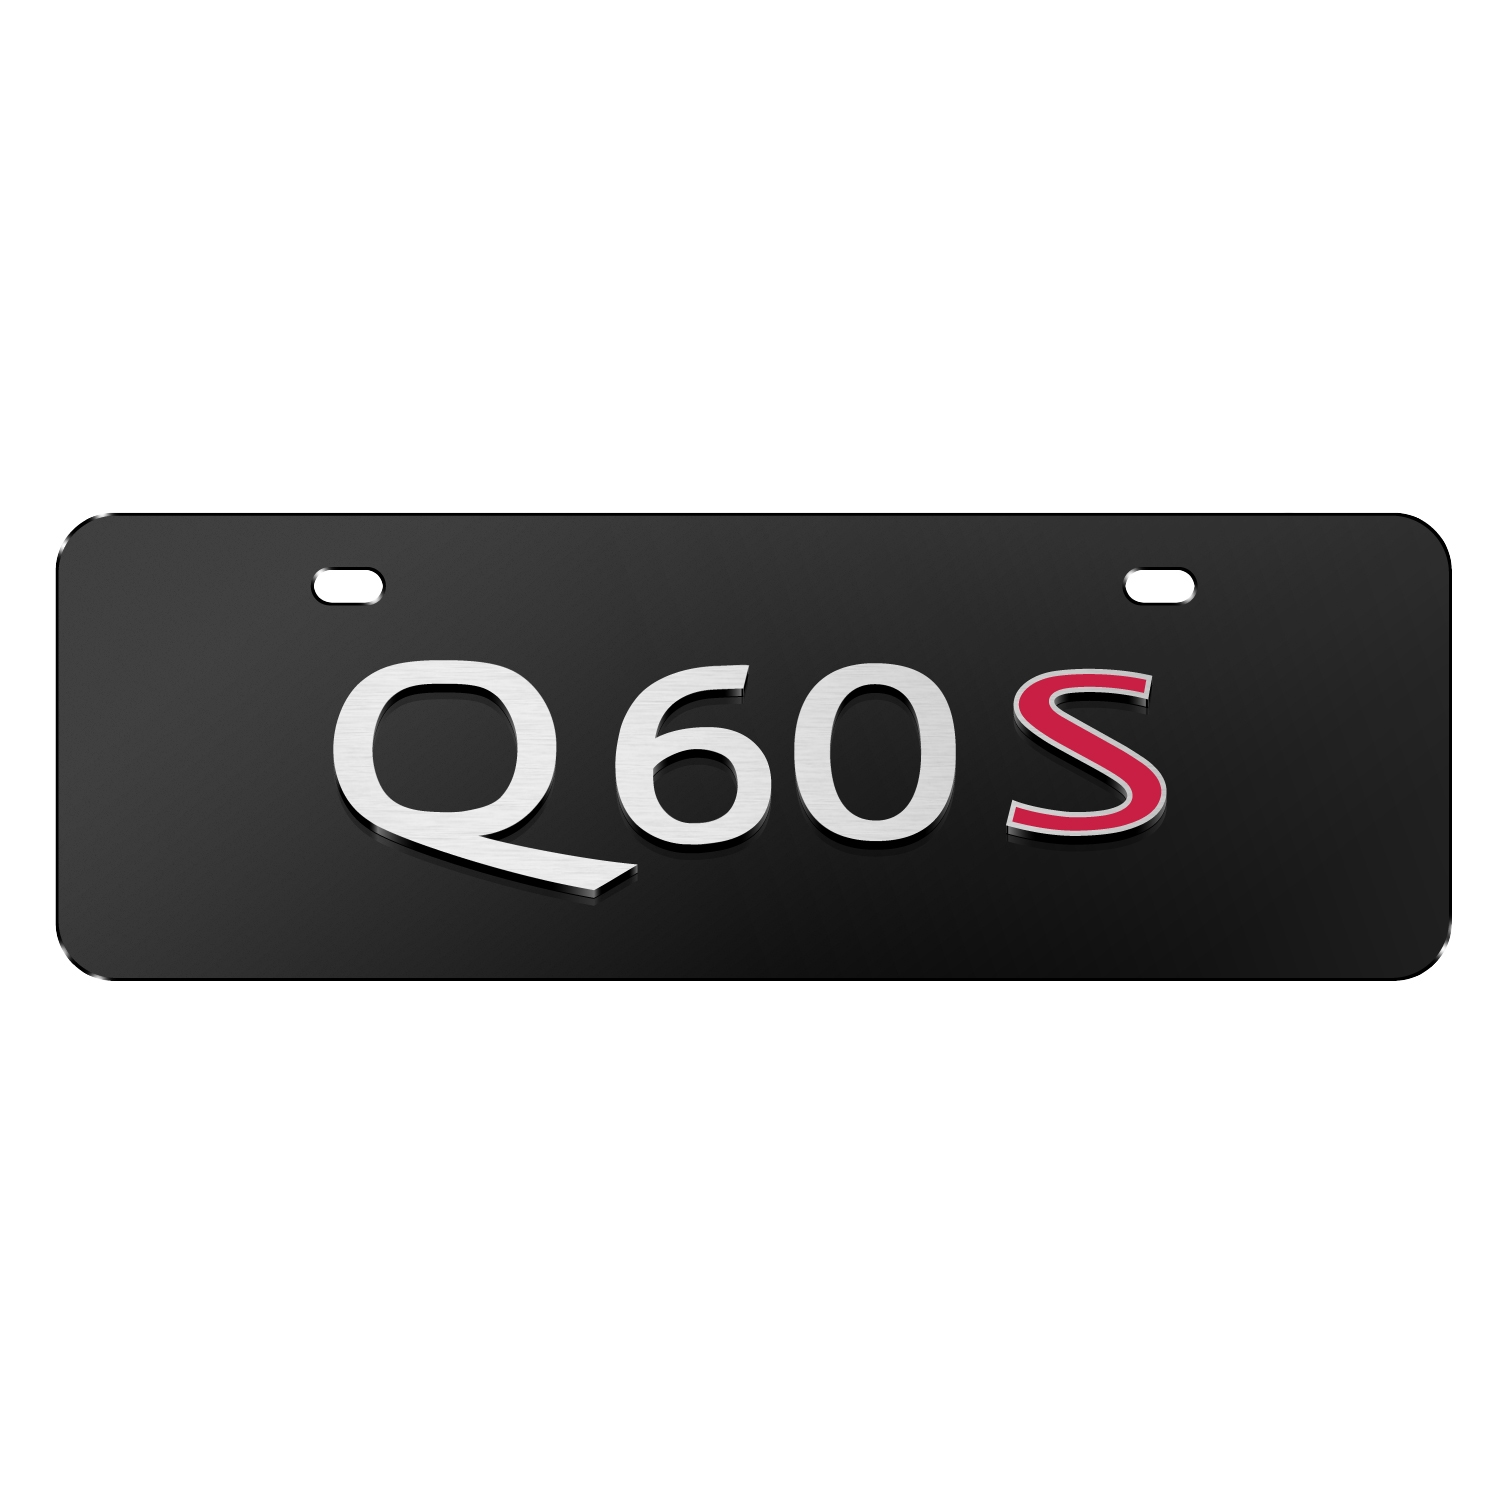 "INFINITI Q60S Name Black 12""x4"" Half-Size Stainless Steel License Plate"